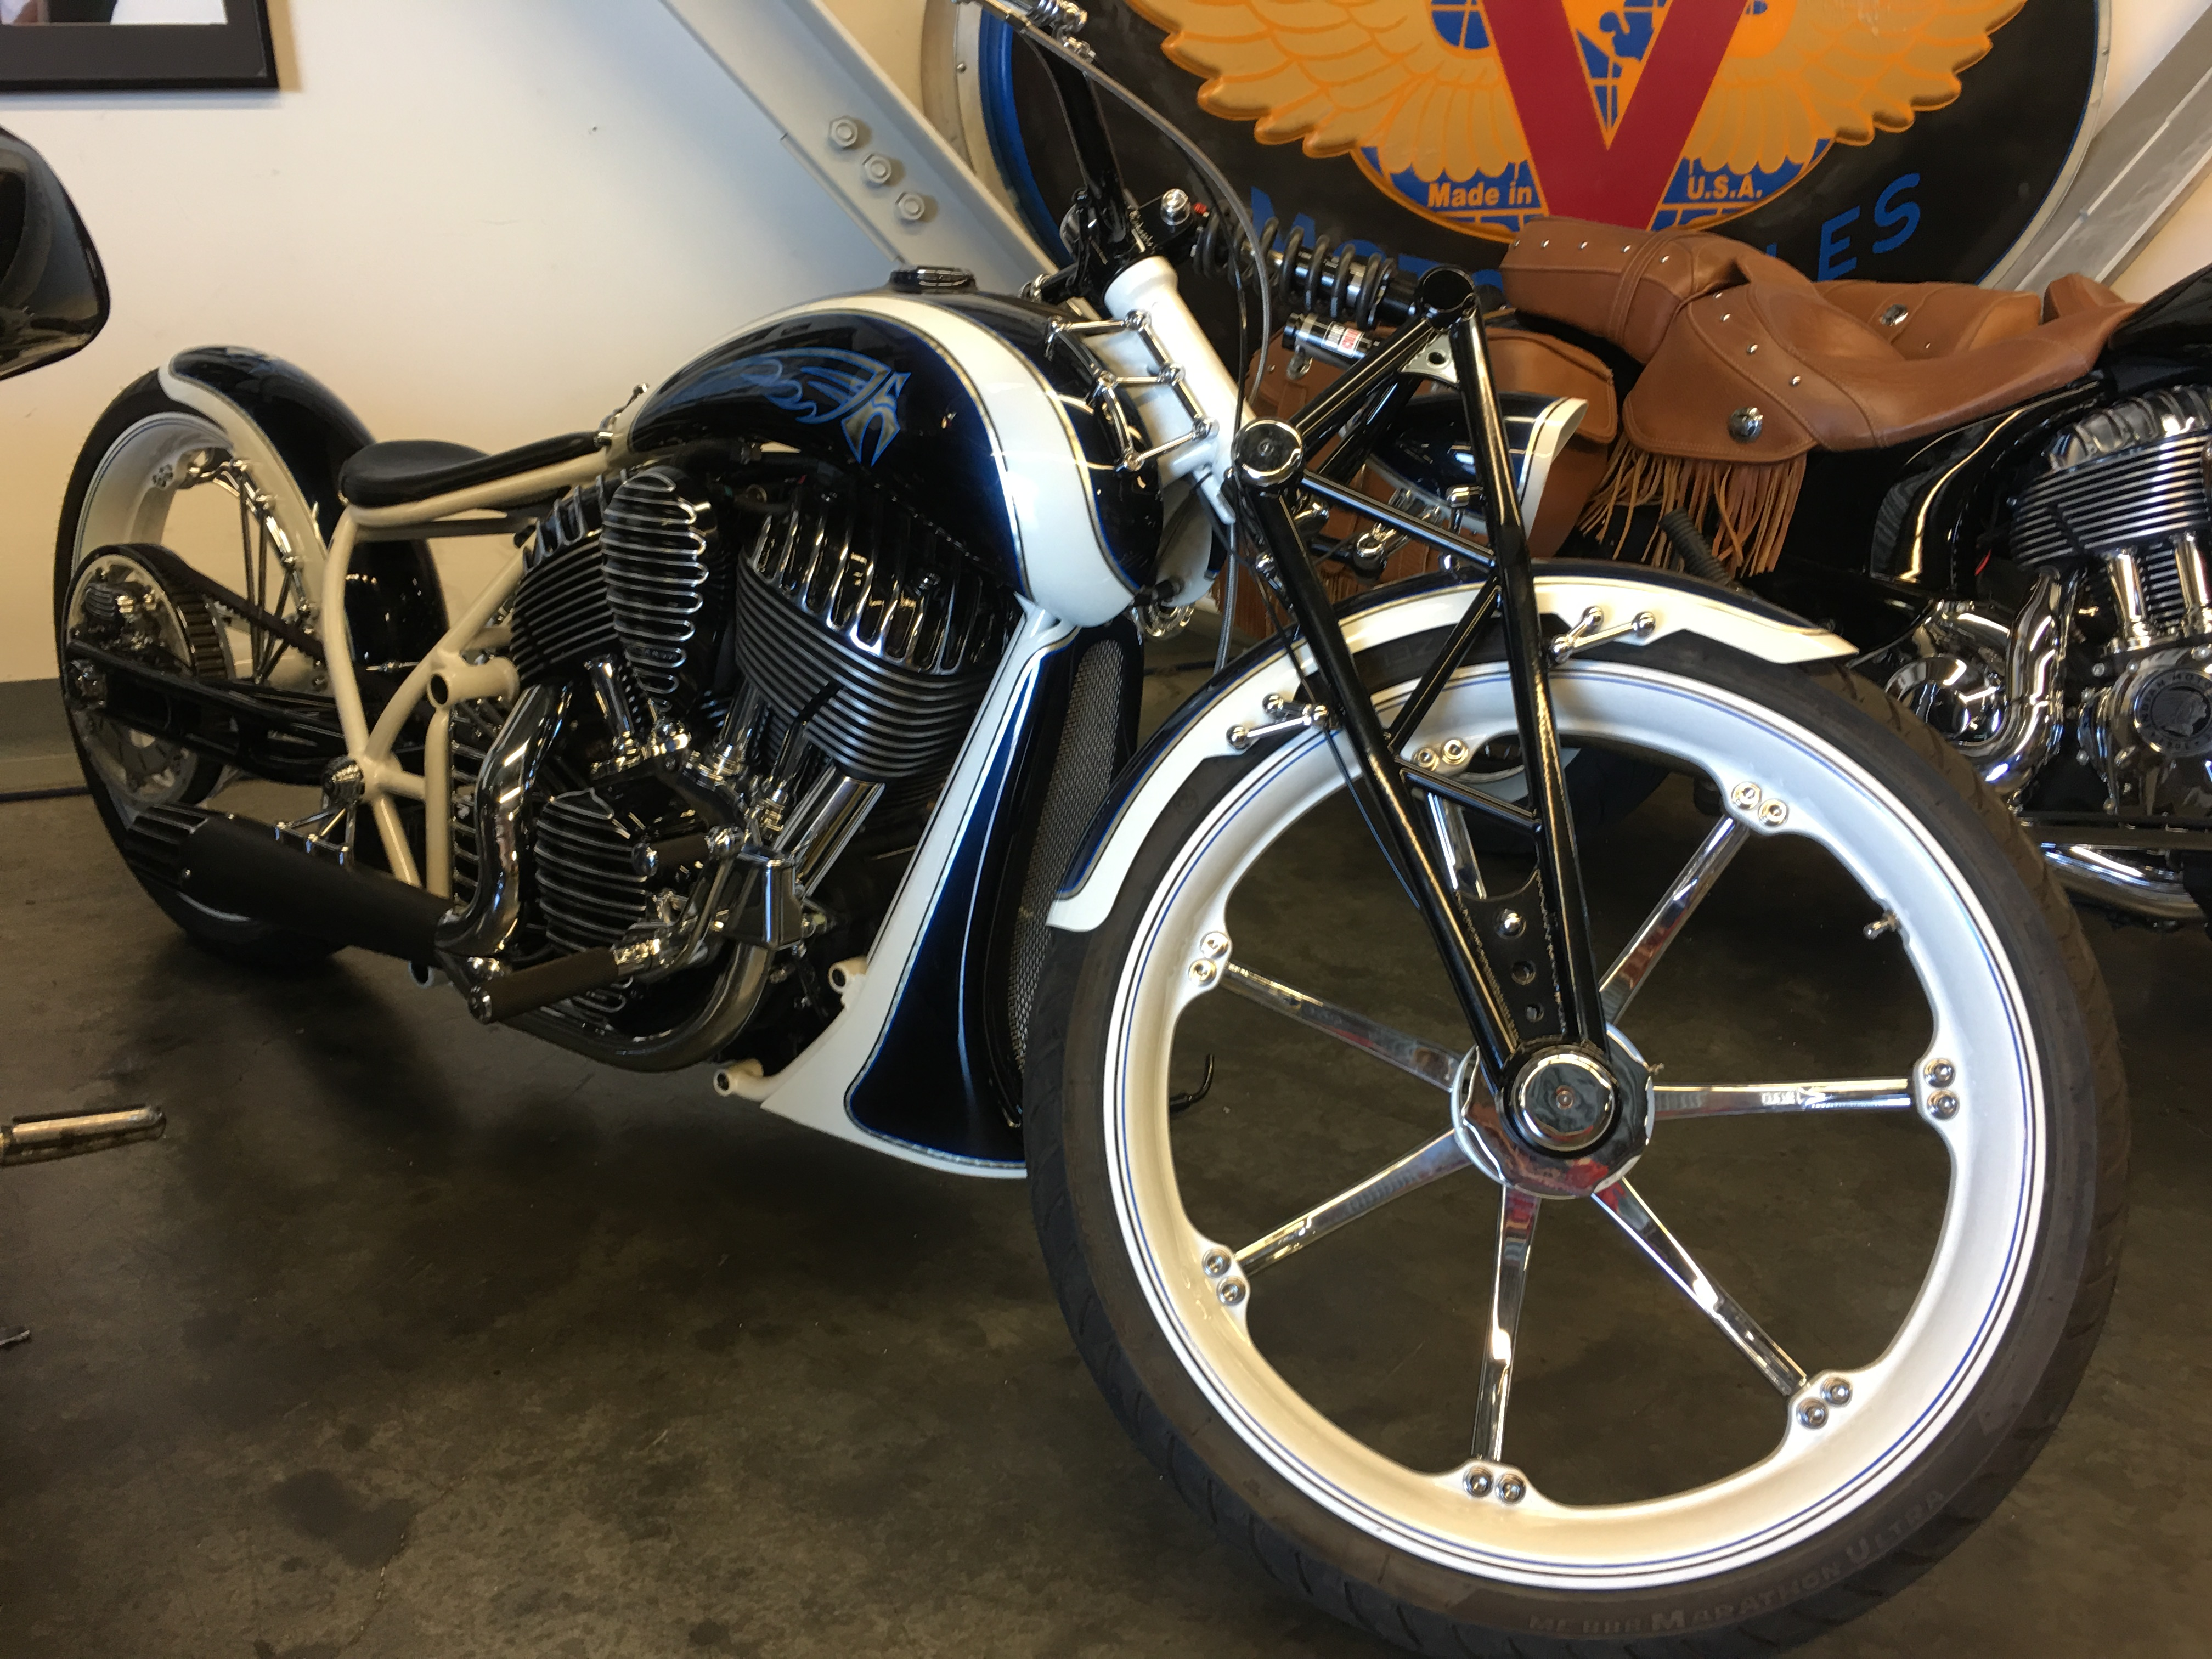 2019 Chieftain Pics | Page 9 | Indian Motorcycle Forum